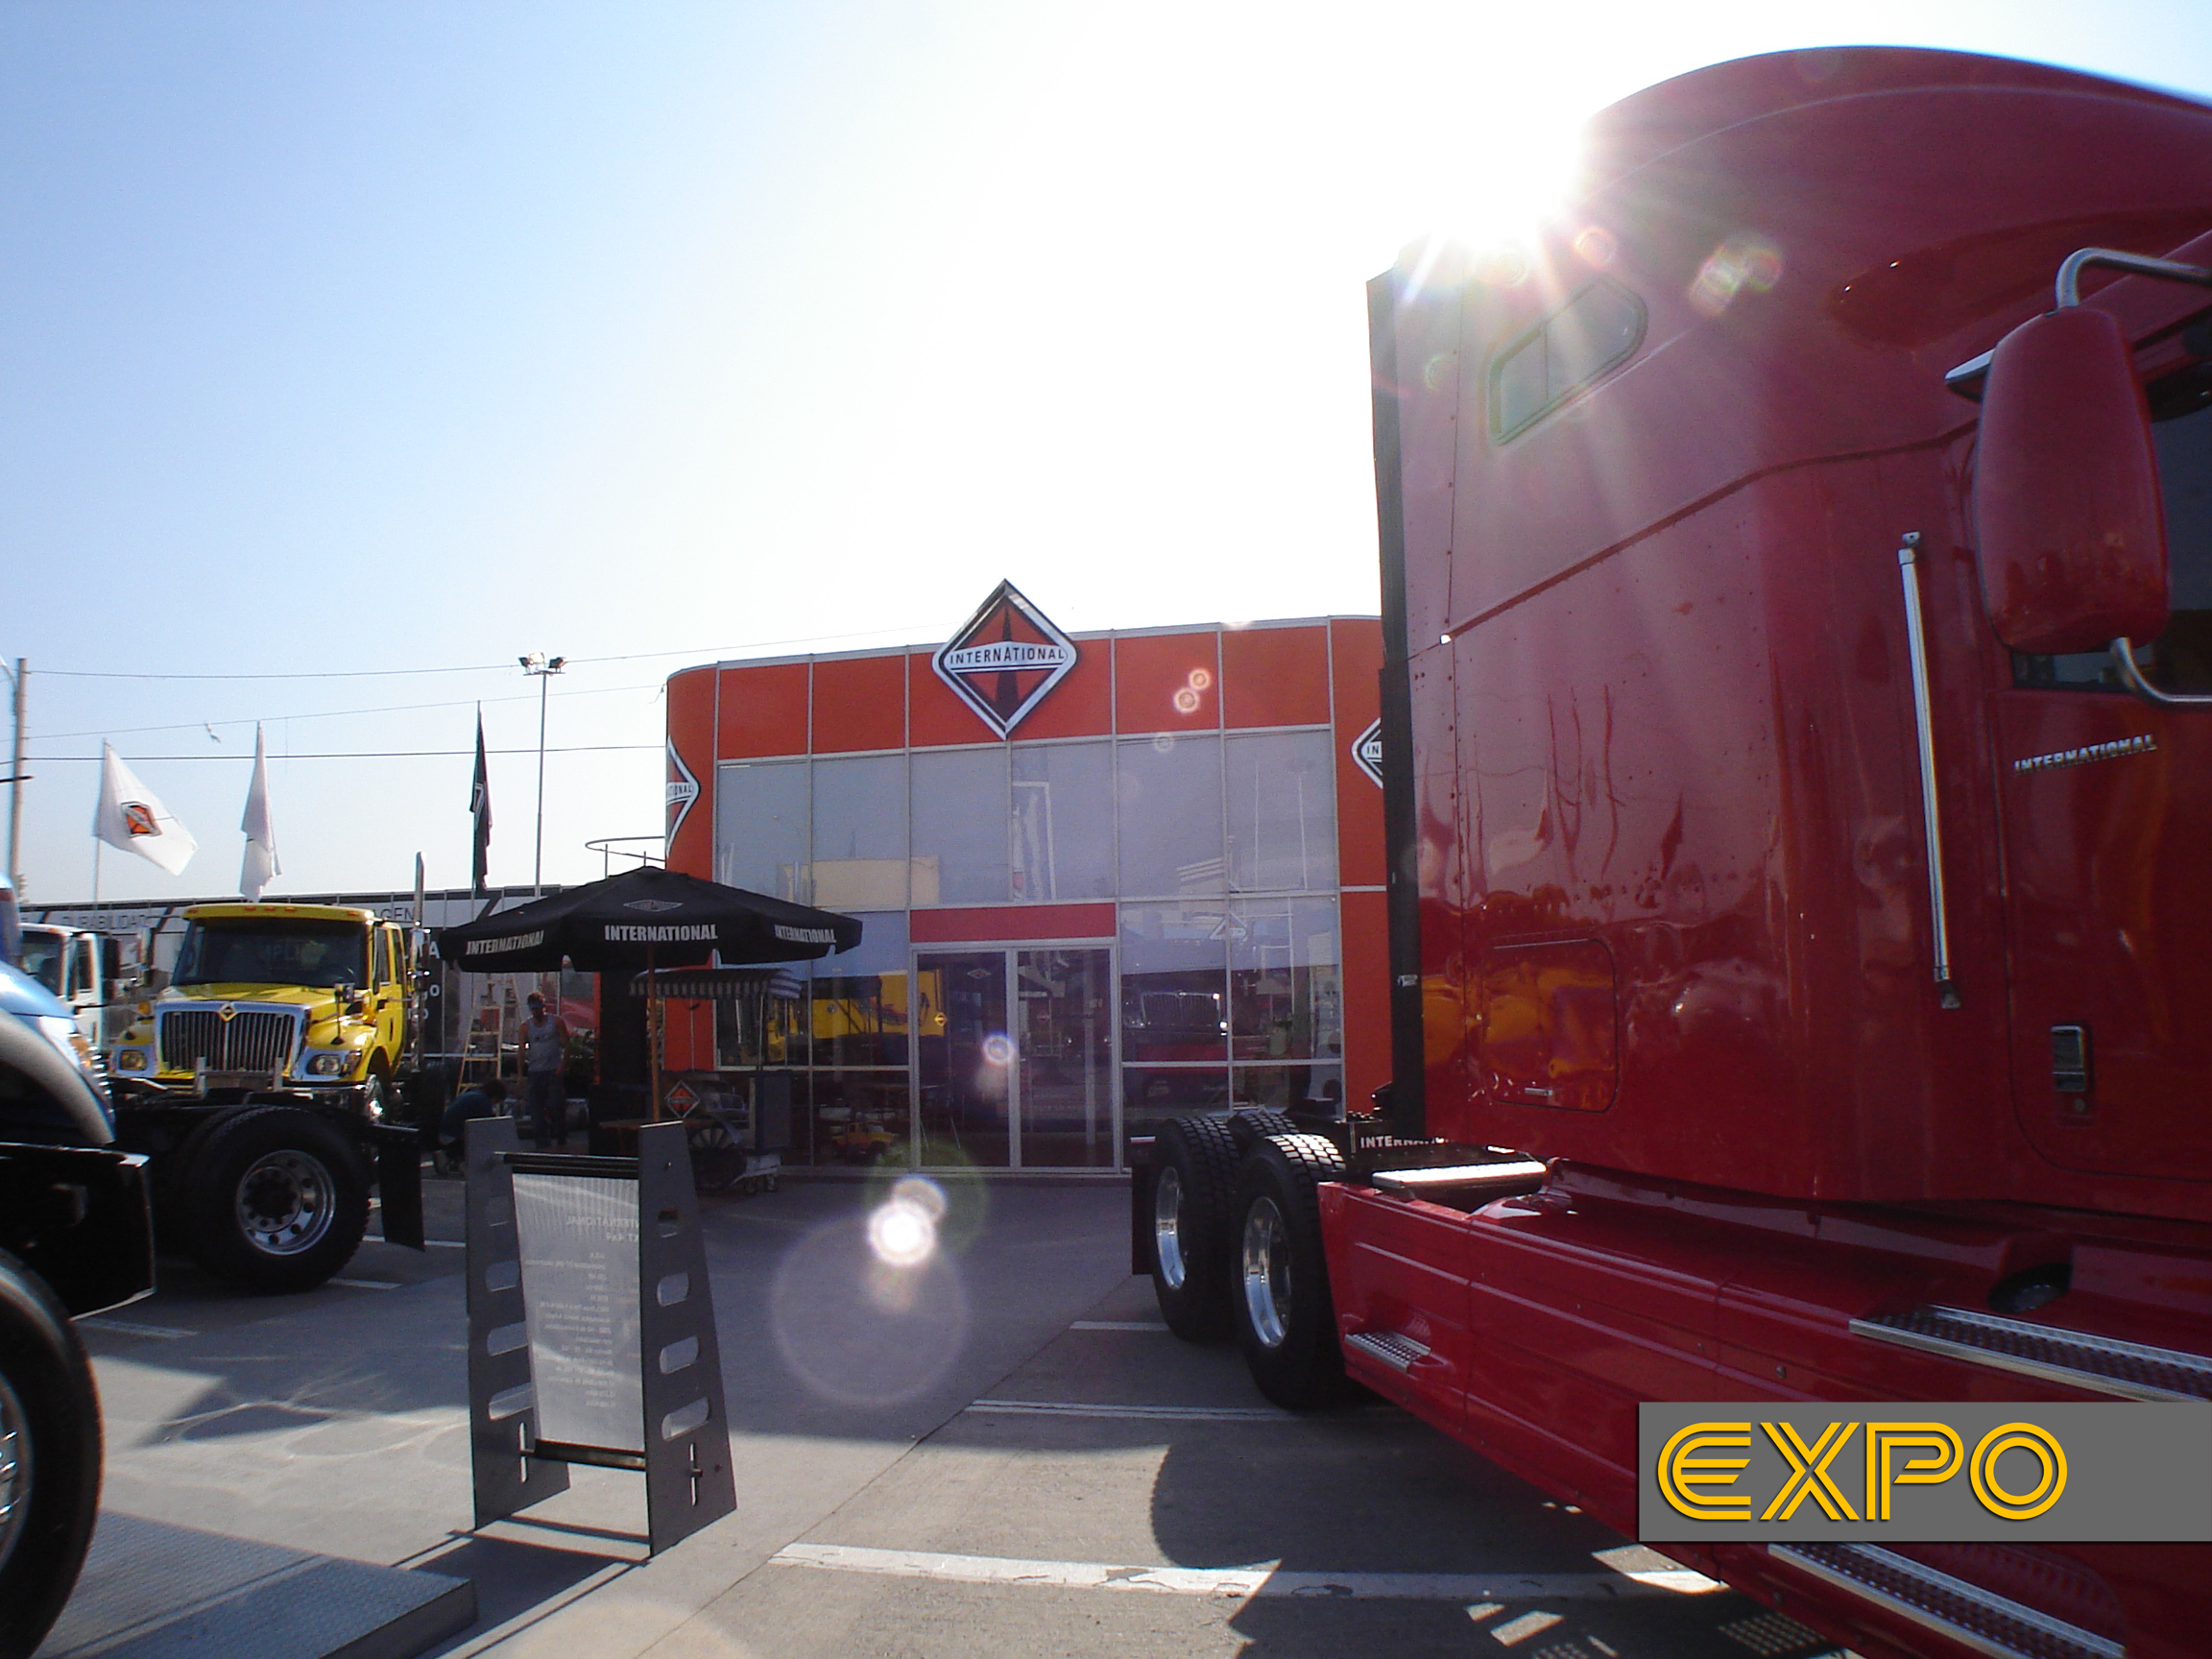 International - Feria del Transporte